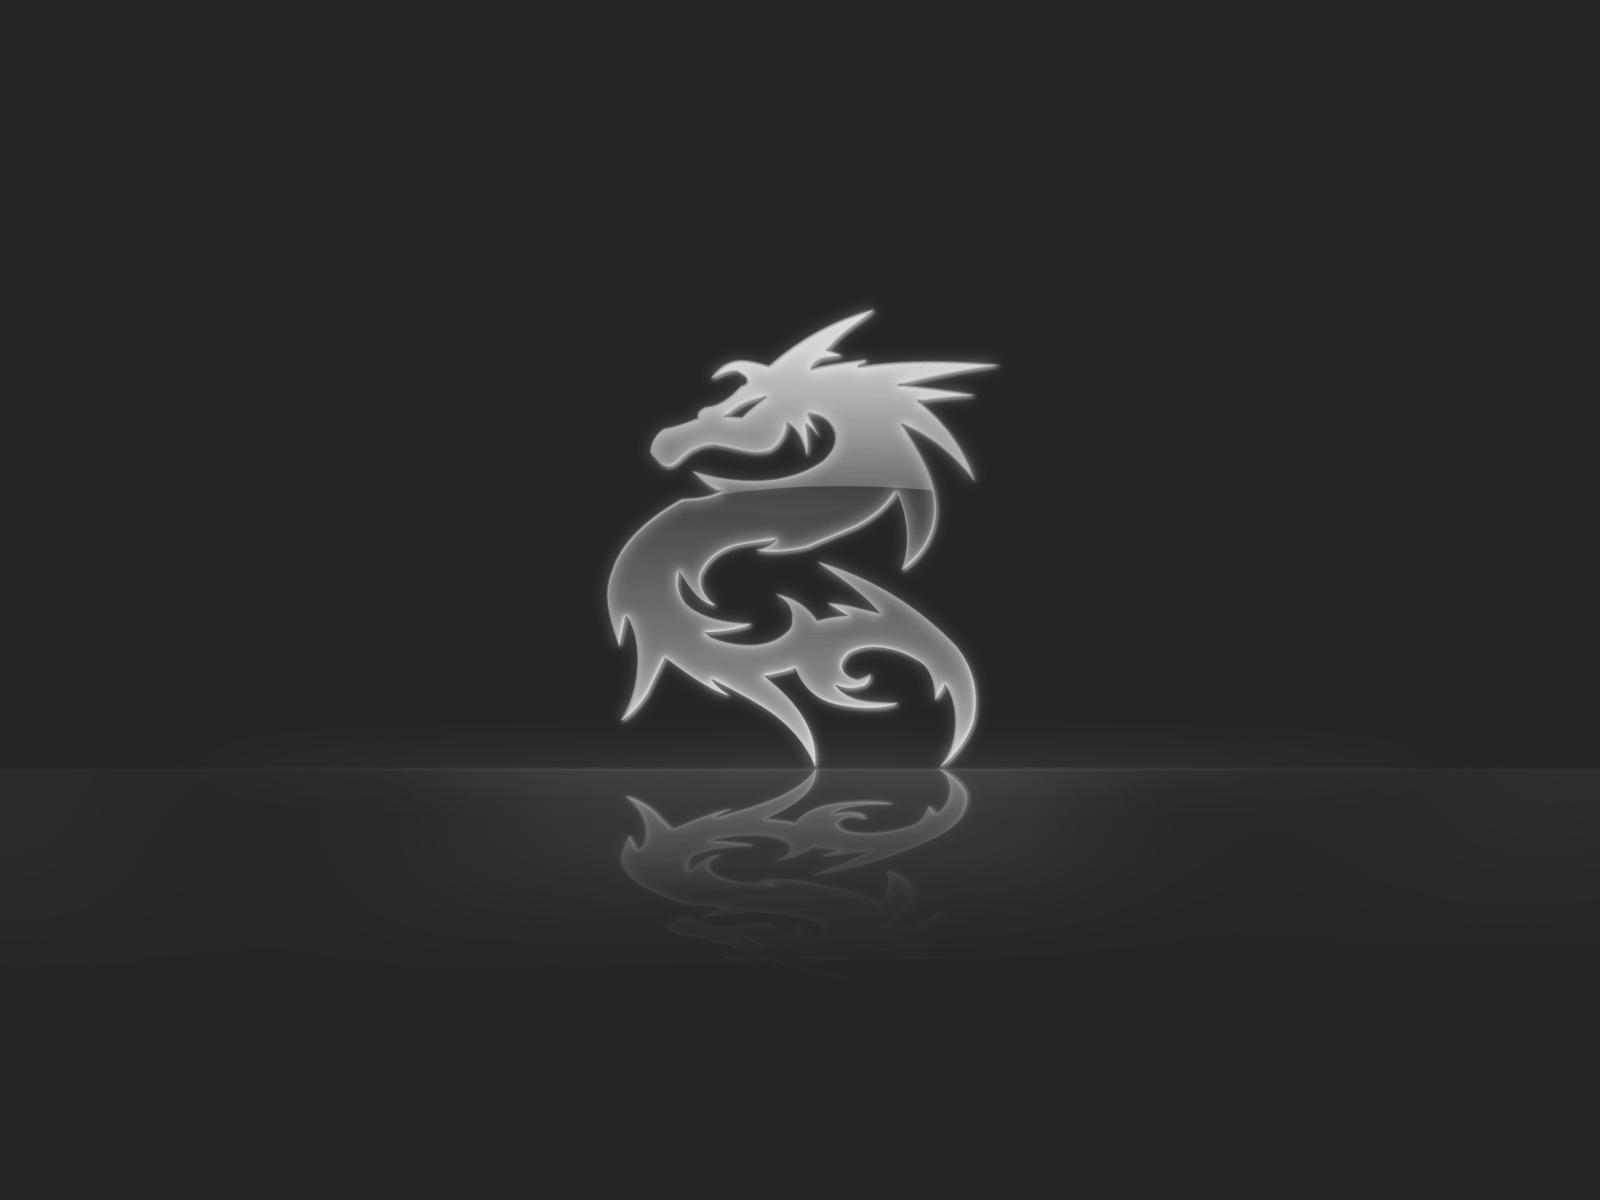 Dragon Black And White Wallpapers Wallpaper Cave